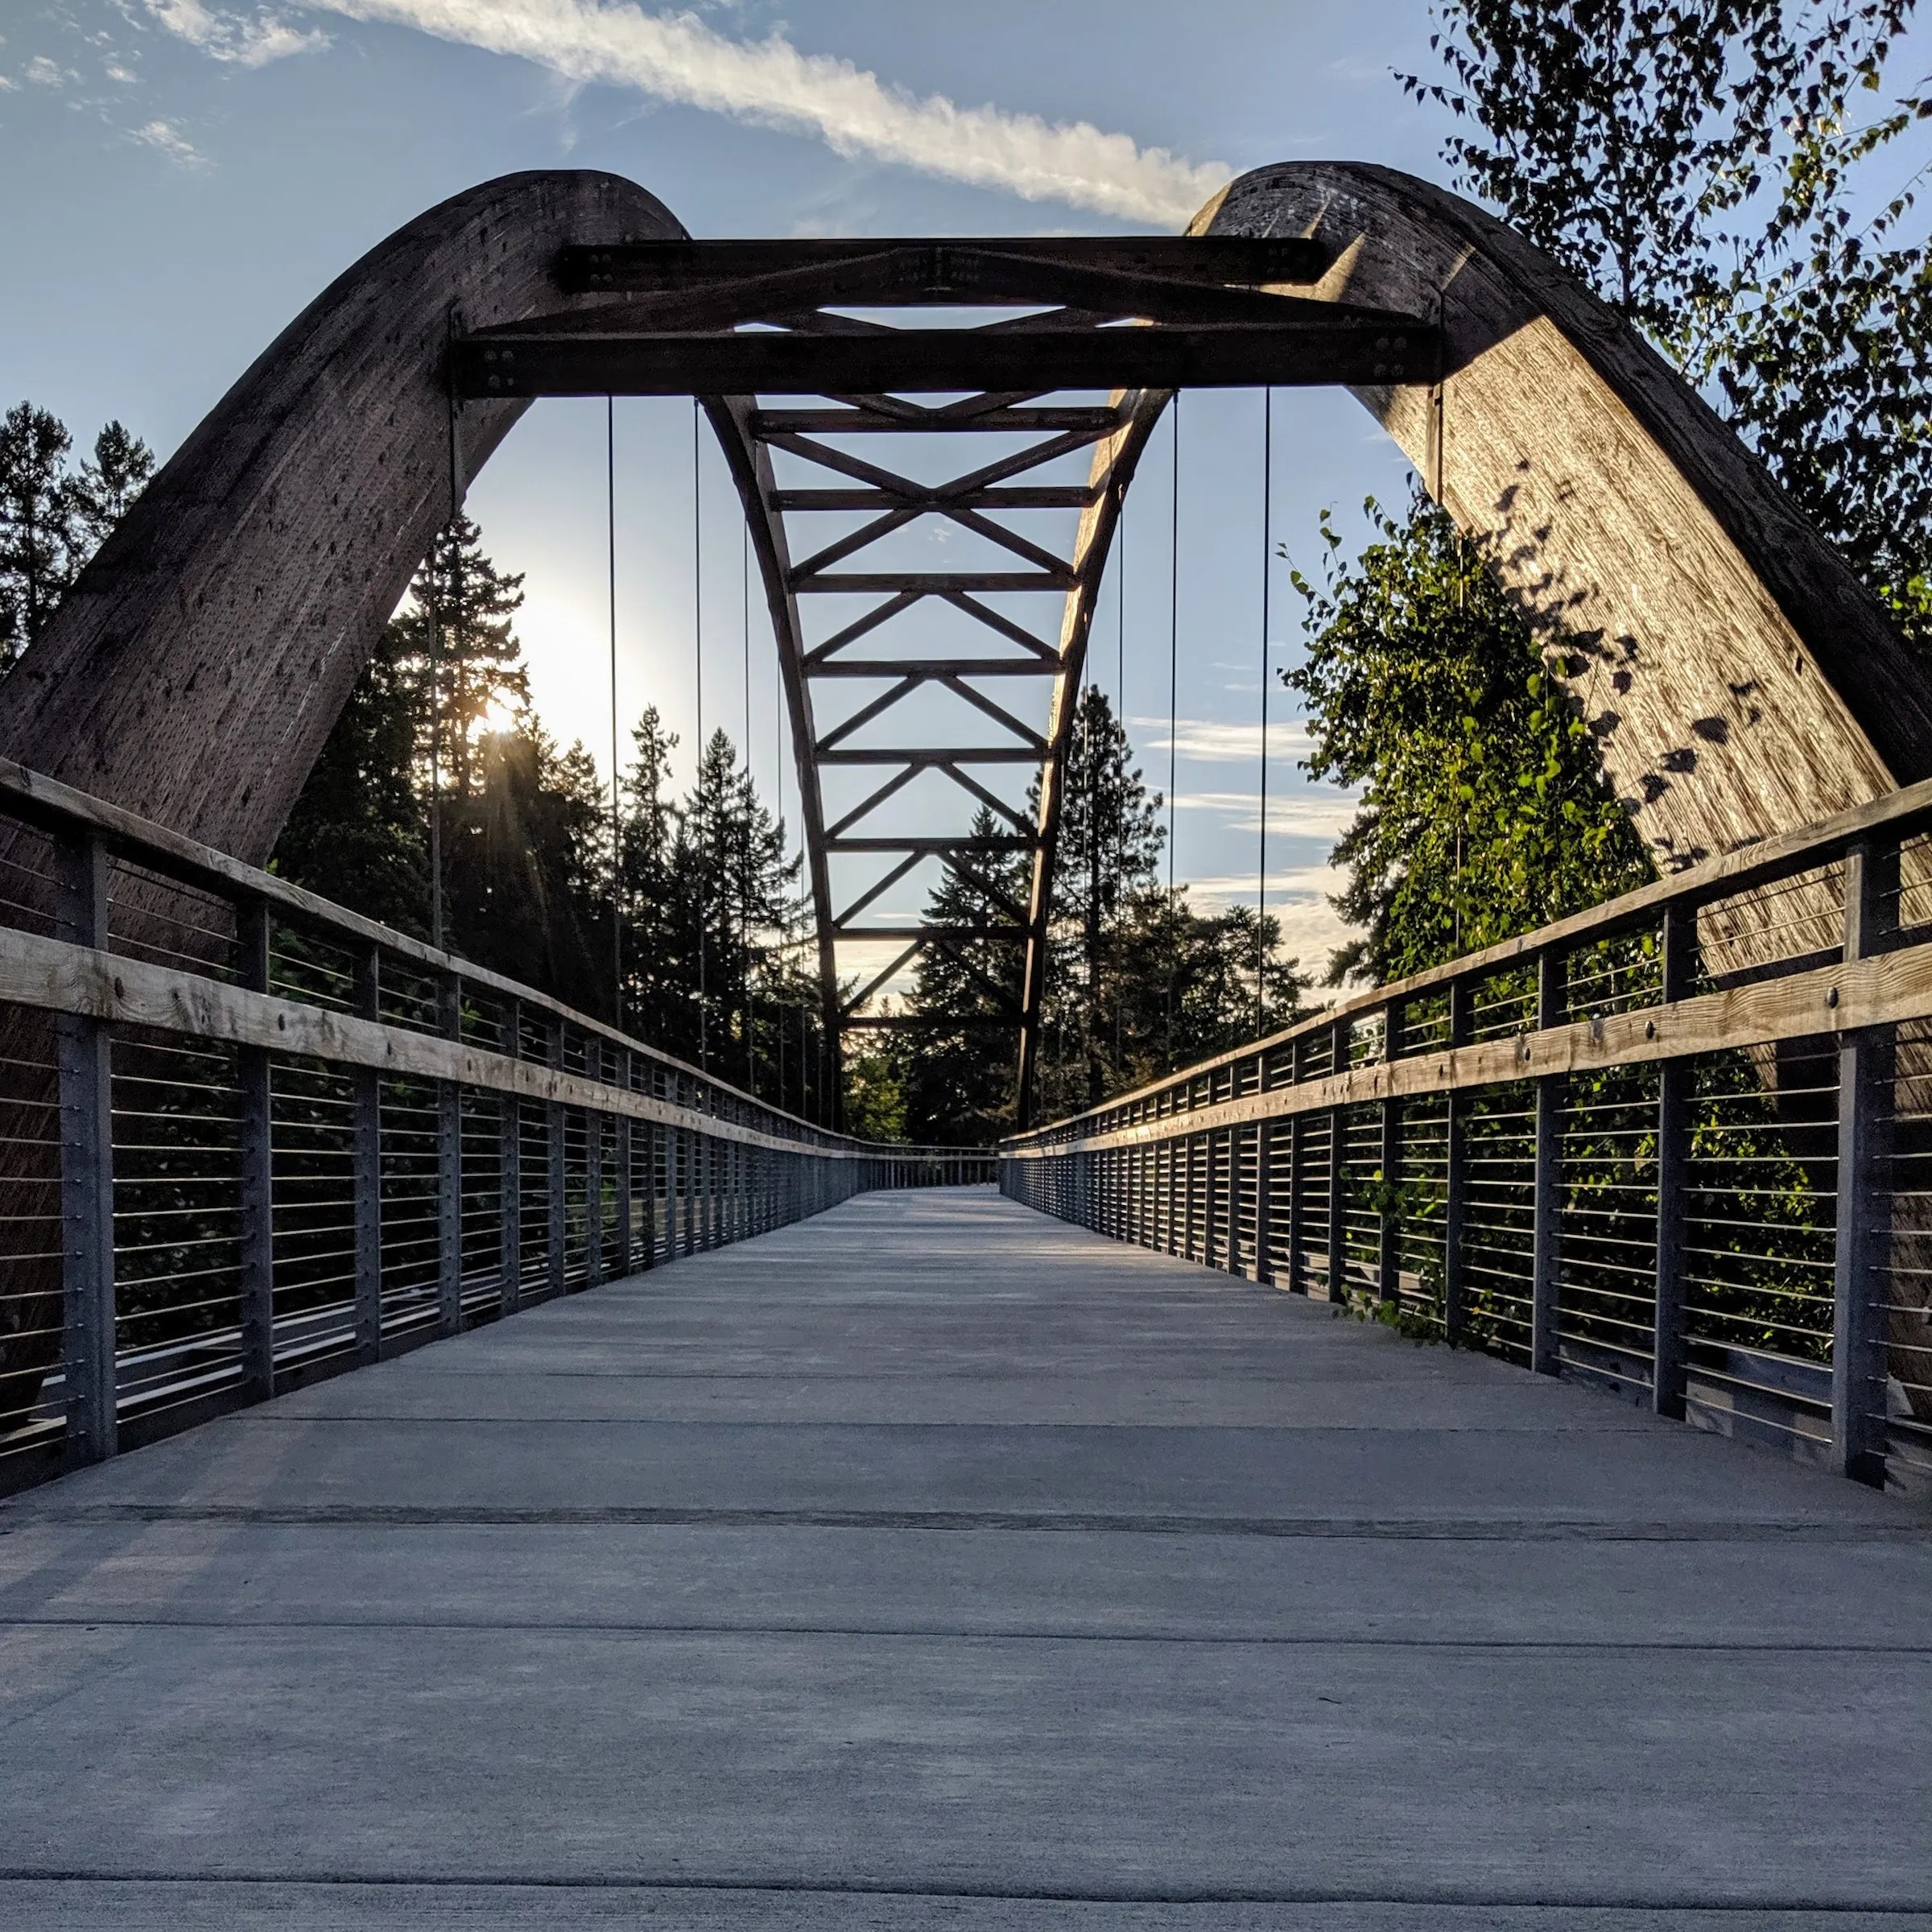 Bridge in Orenco Park